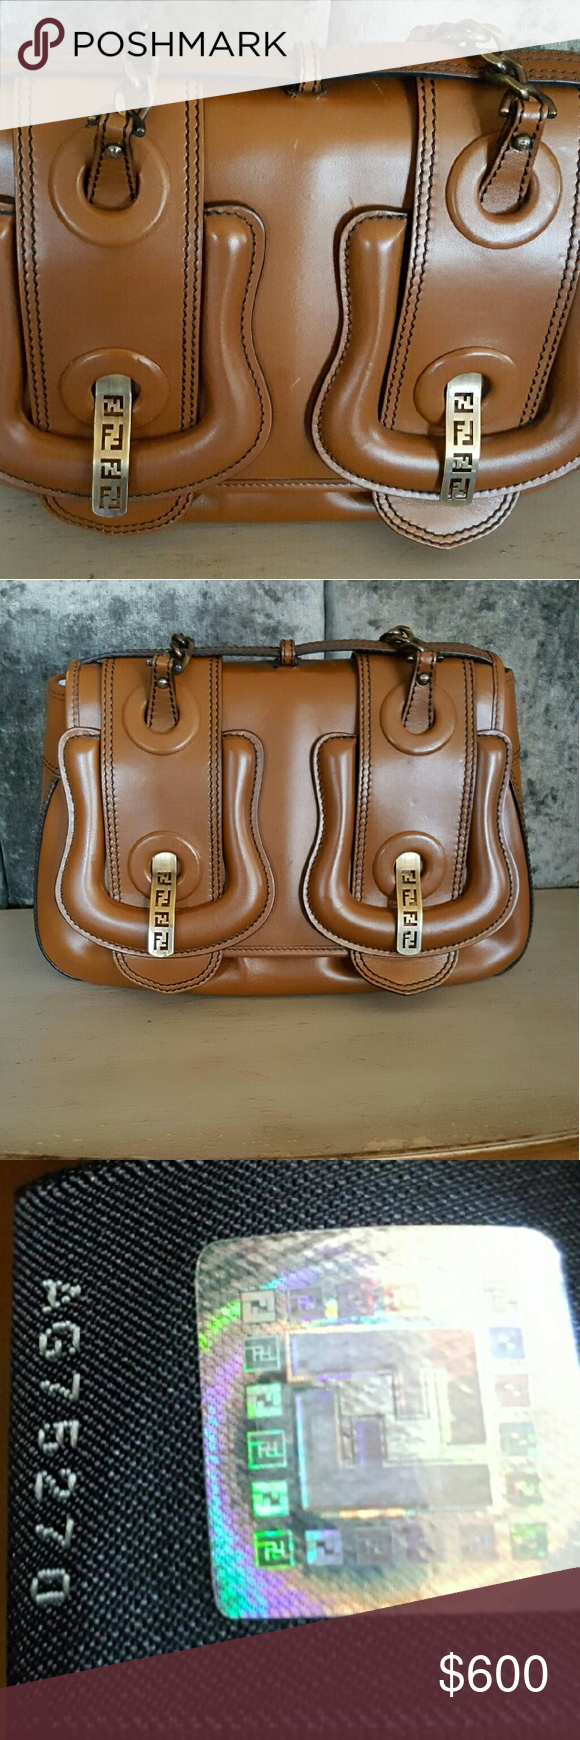 29cc3f059a29 AUTHENTIC IN NEW CONDITION BAG FENDI BAG WITH BIG BUCKLES THAT HAVE  ENGRAVED FENDI BRASS HARDWARE